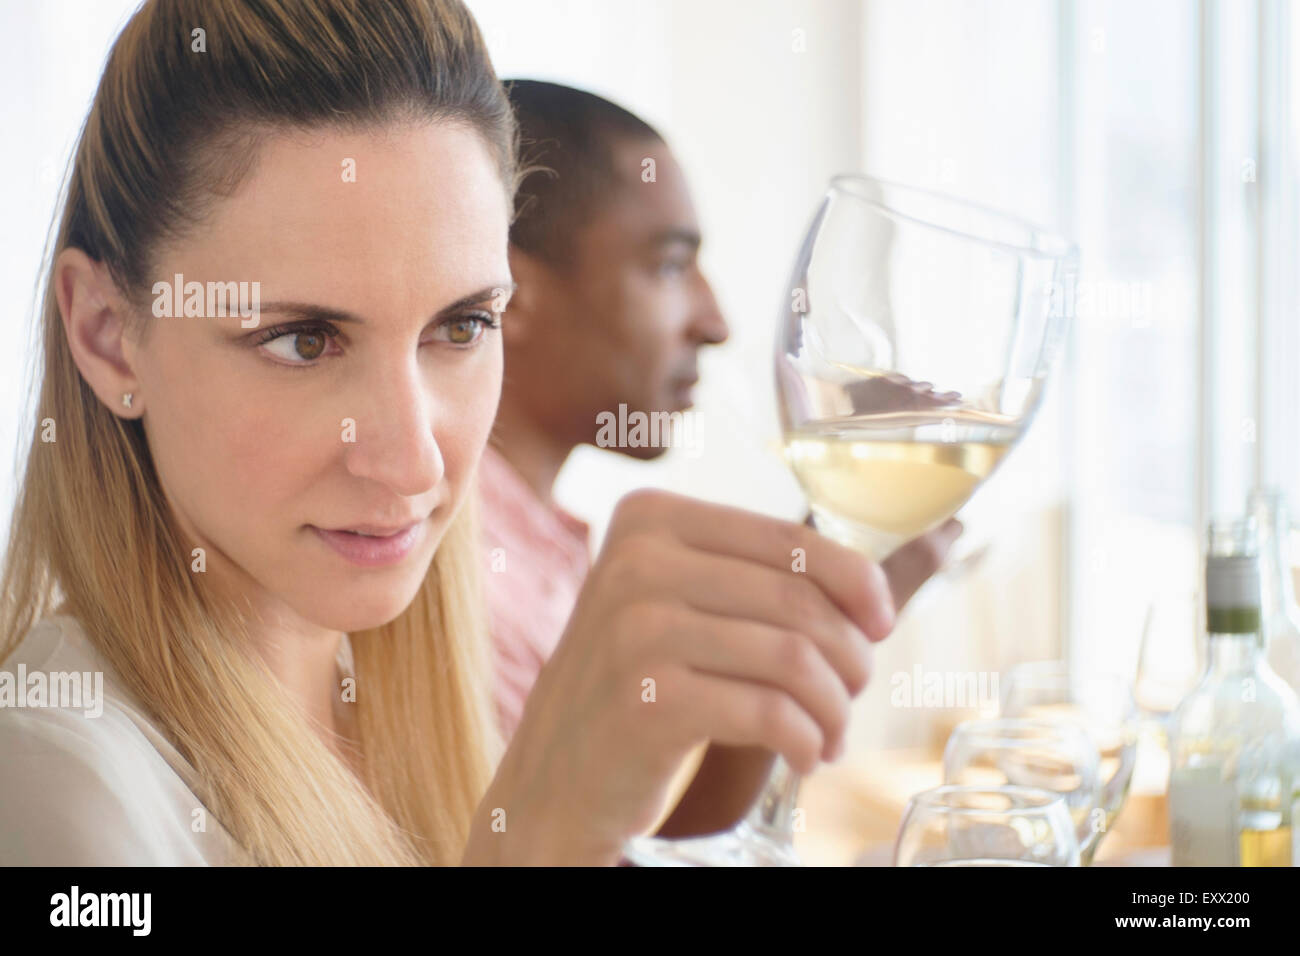 Man and woman tasting white wine Stock Photo